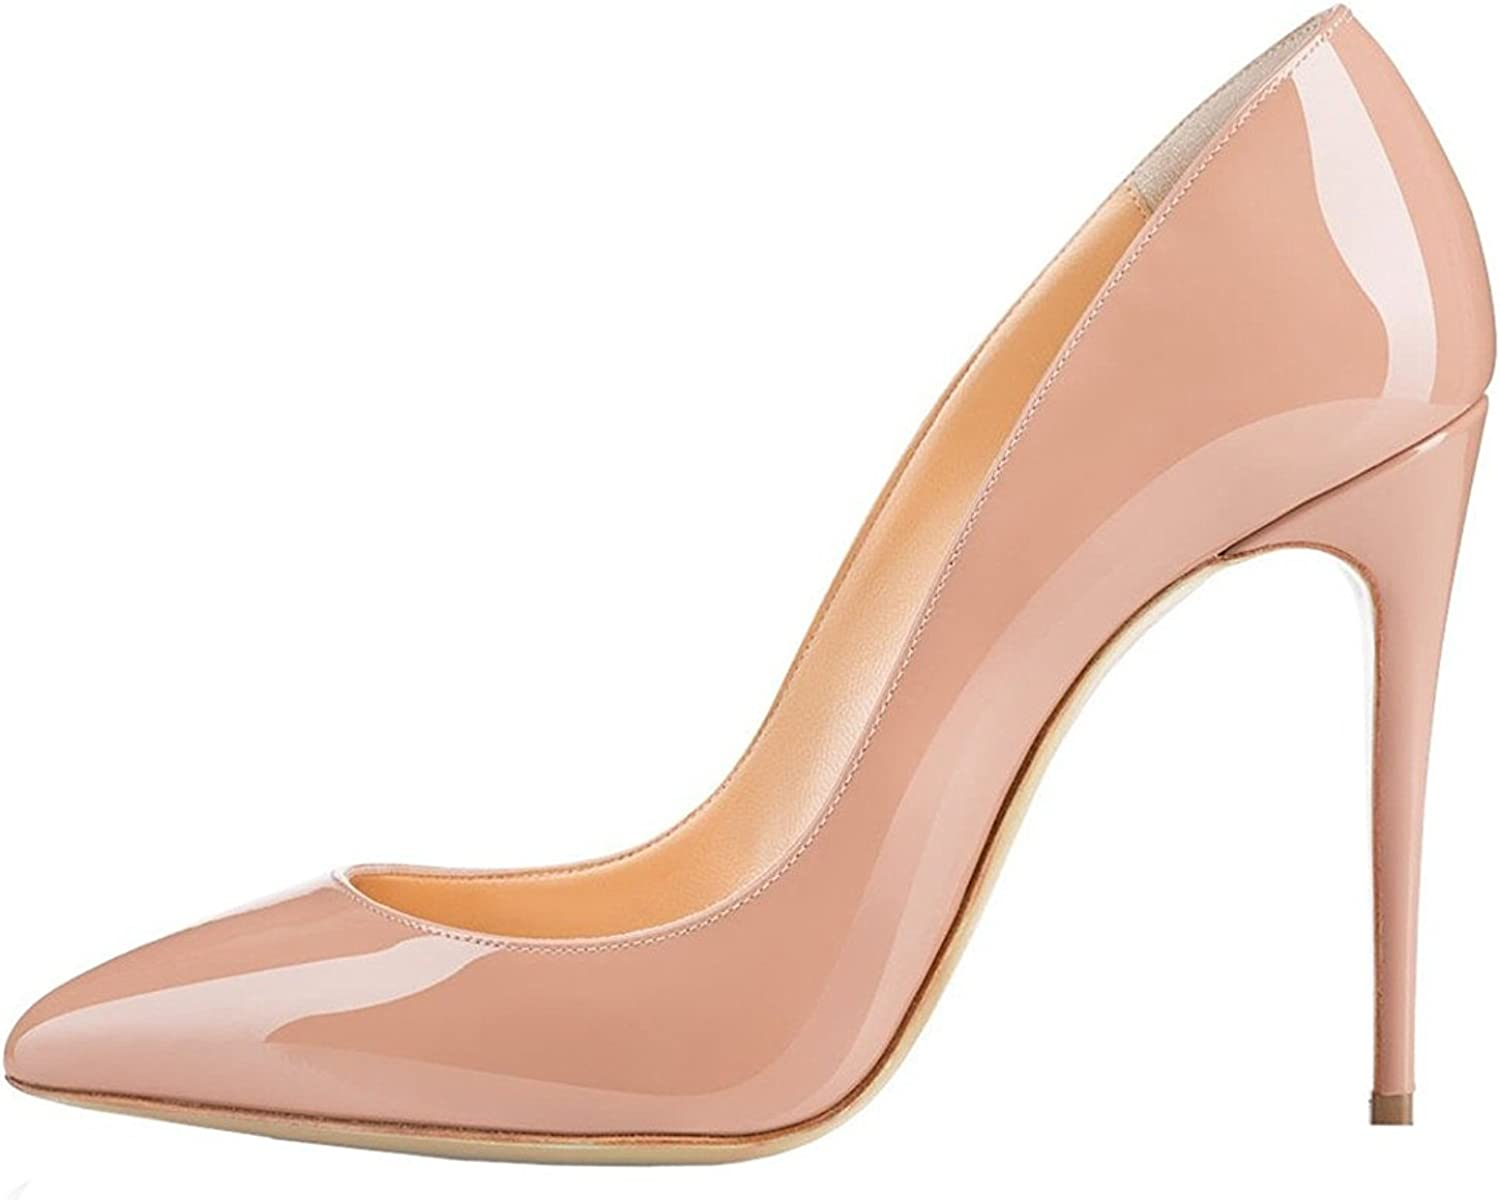 Sammitop Women's Pointed Toe Pumps Classic Stiletto High Heel Office Dress shoes